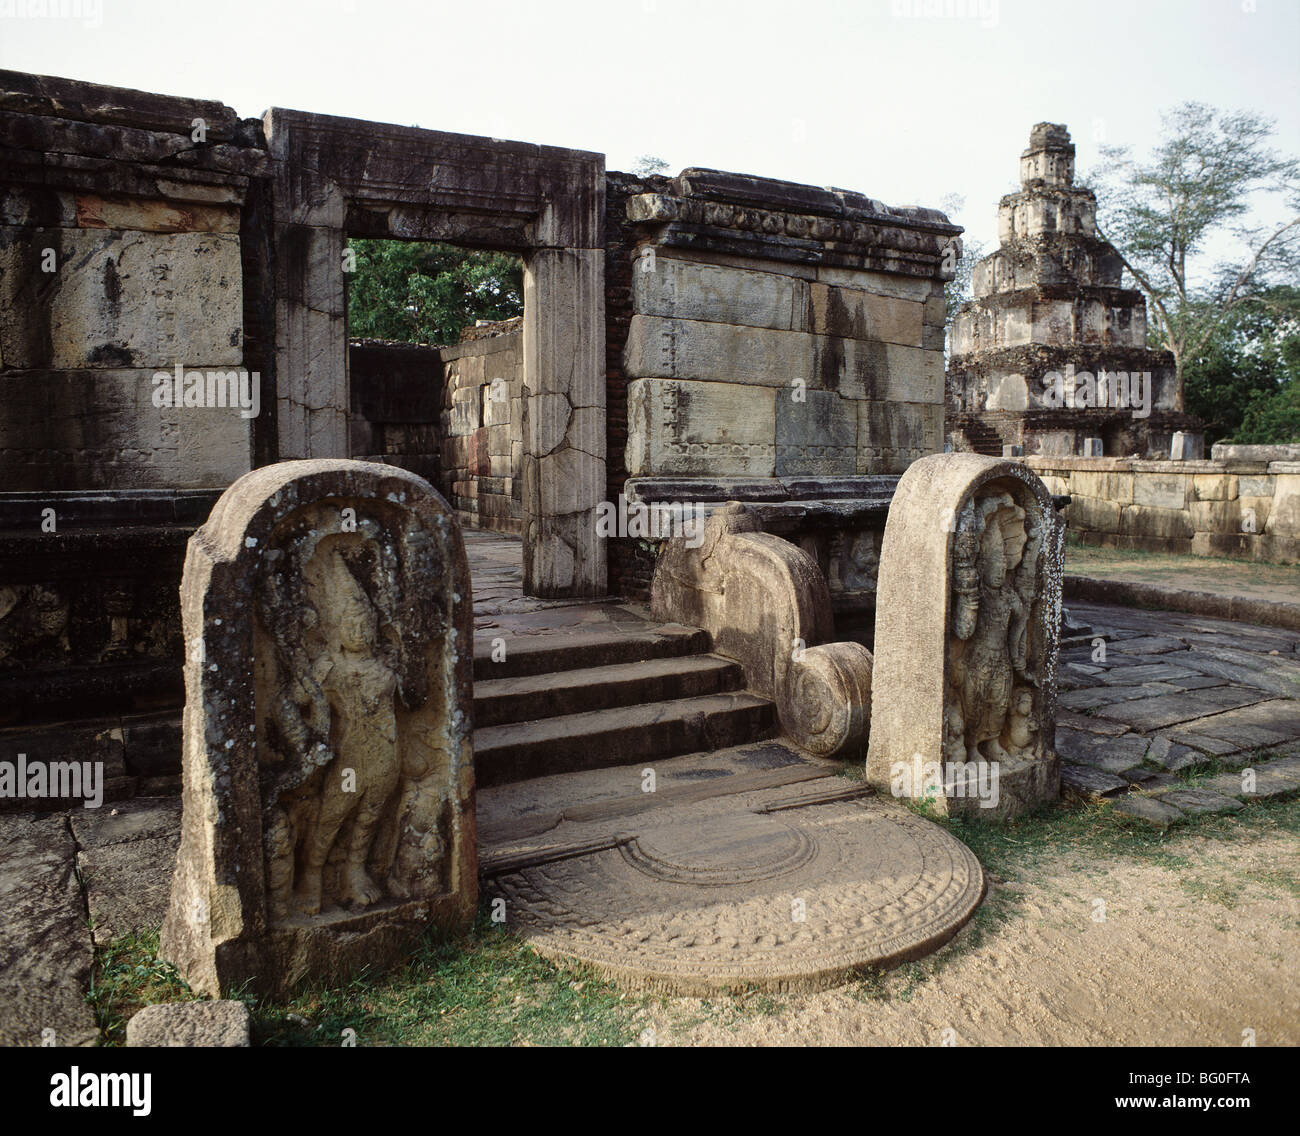 The Vatadage (Hall of the Relic) in Polonnaruwa, UNESCO World Heritage Site, Sri Lanka, Asia - Stock Image